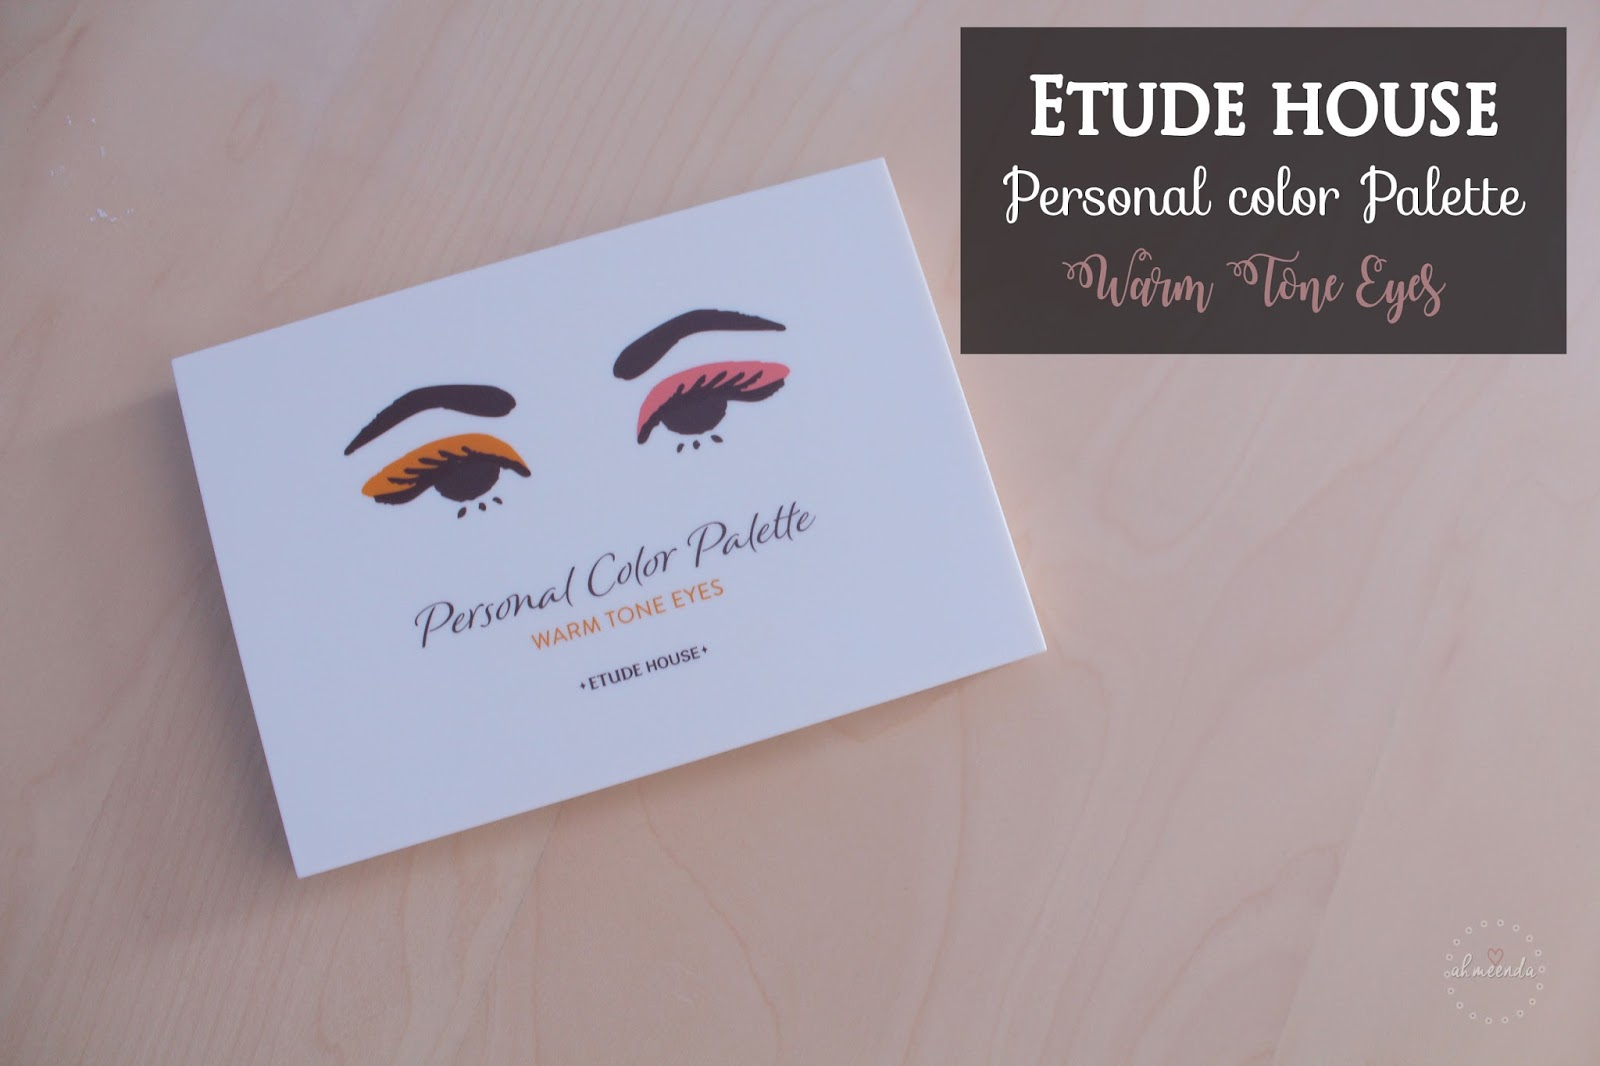 Personal Color Palette Pro Warm Tone Lips by Etude House #20